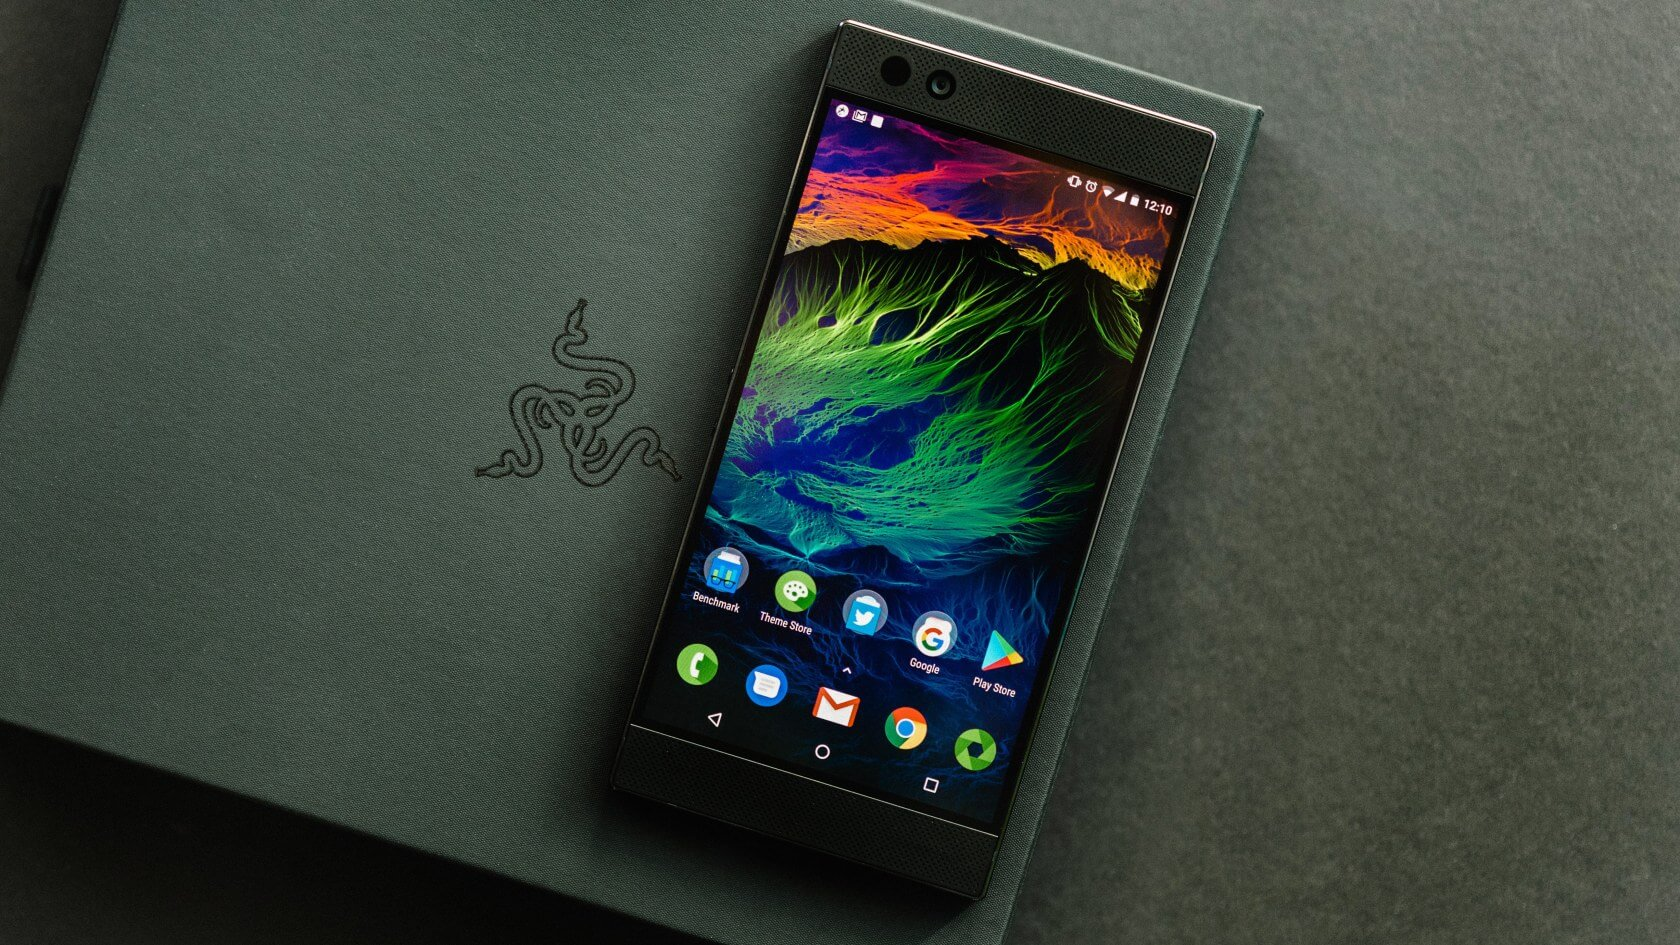 Where's the best place to buy a Razer Phone 2?